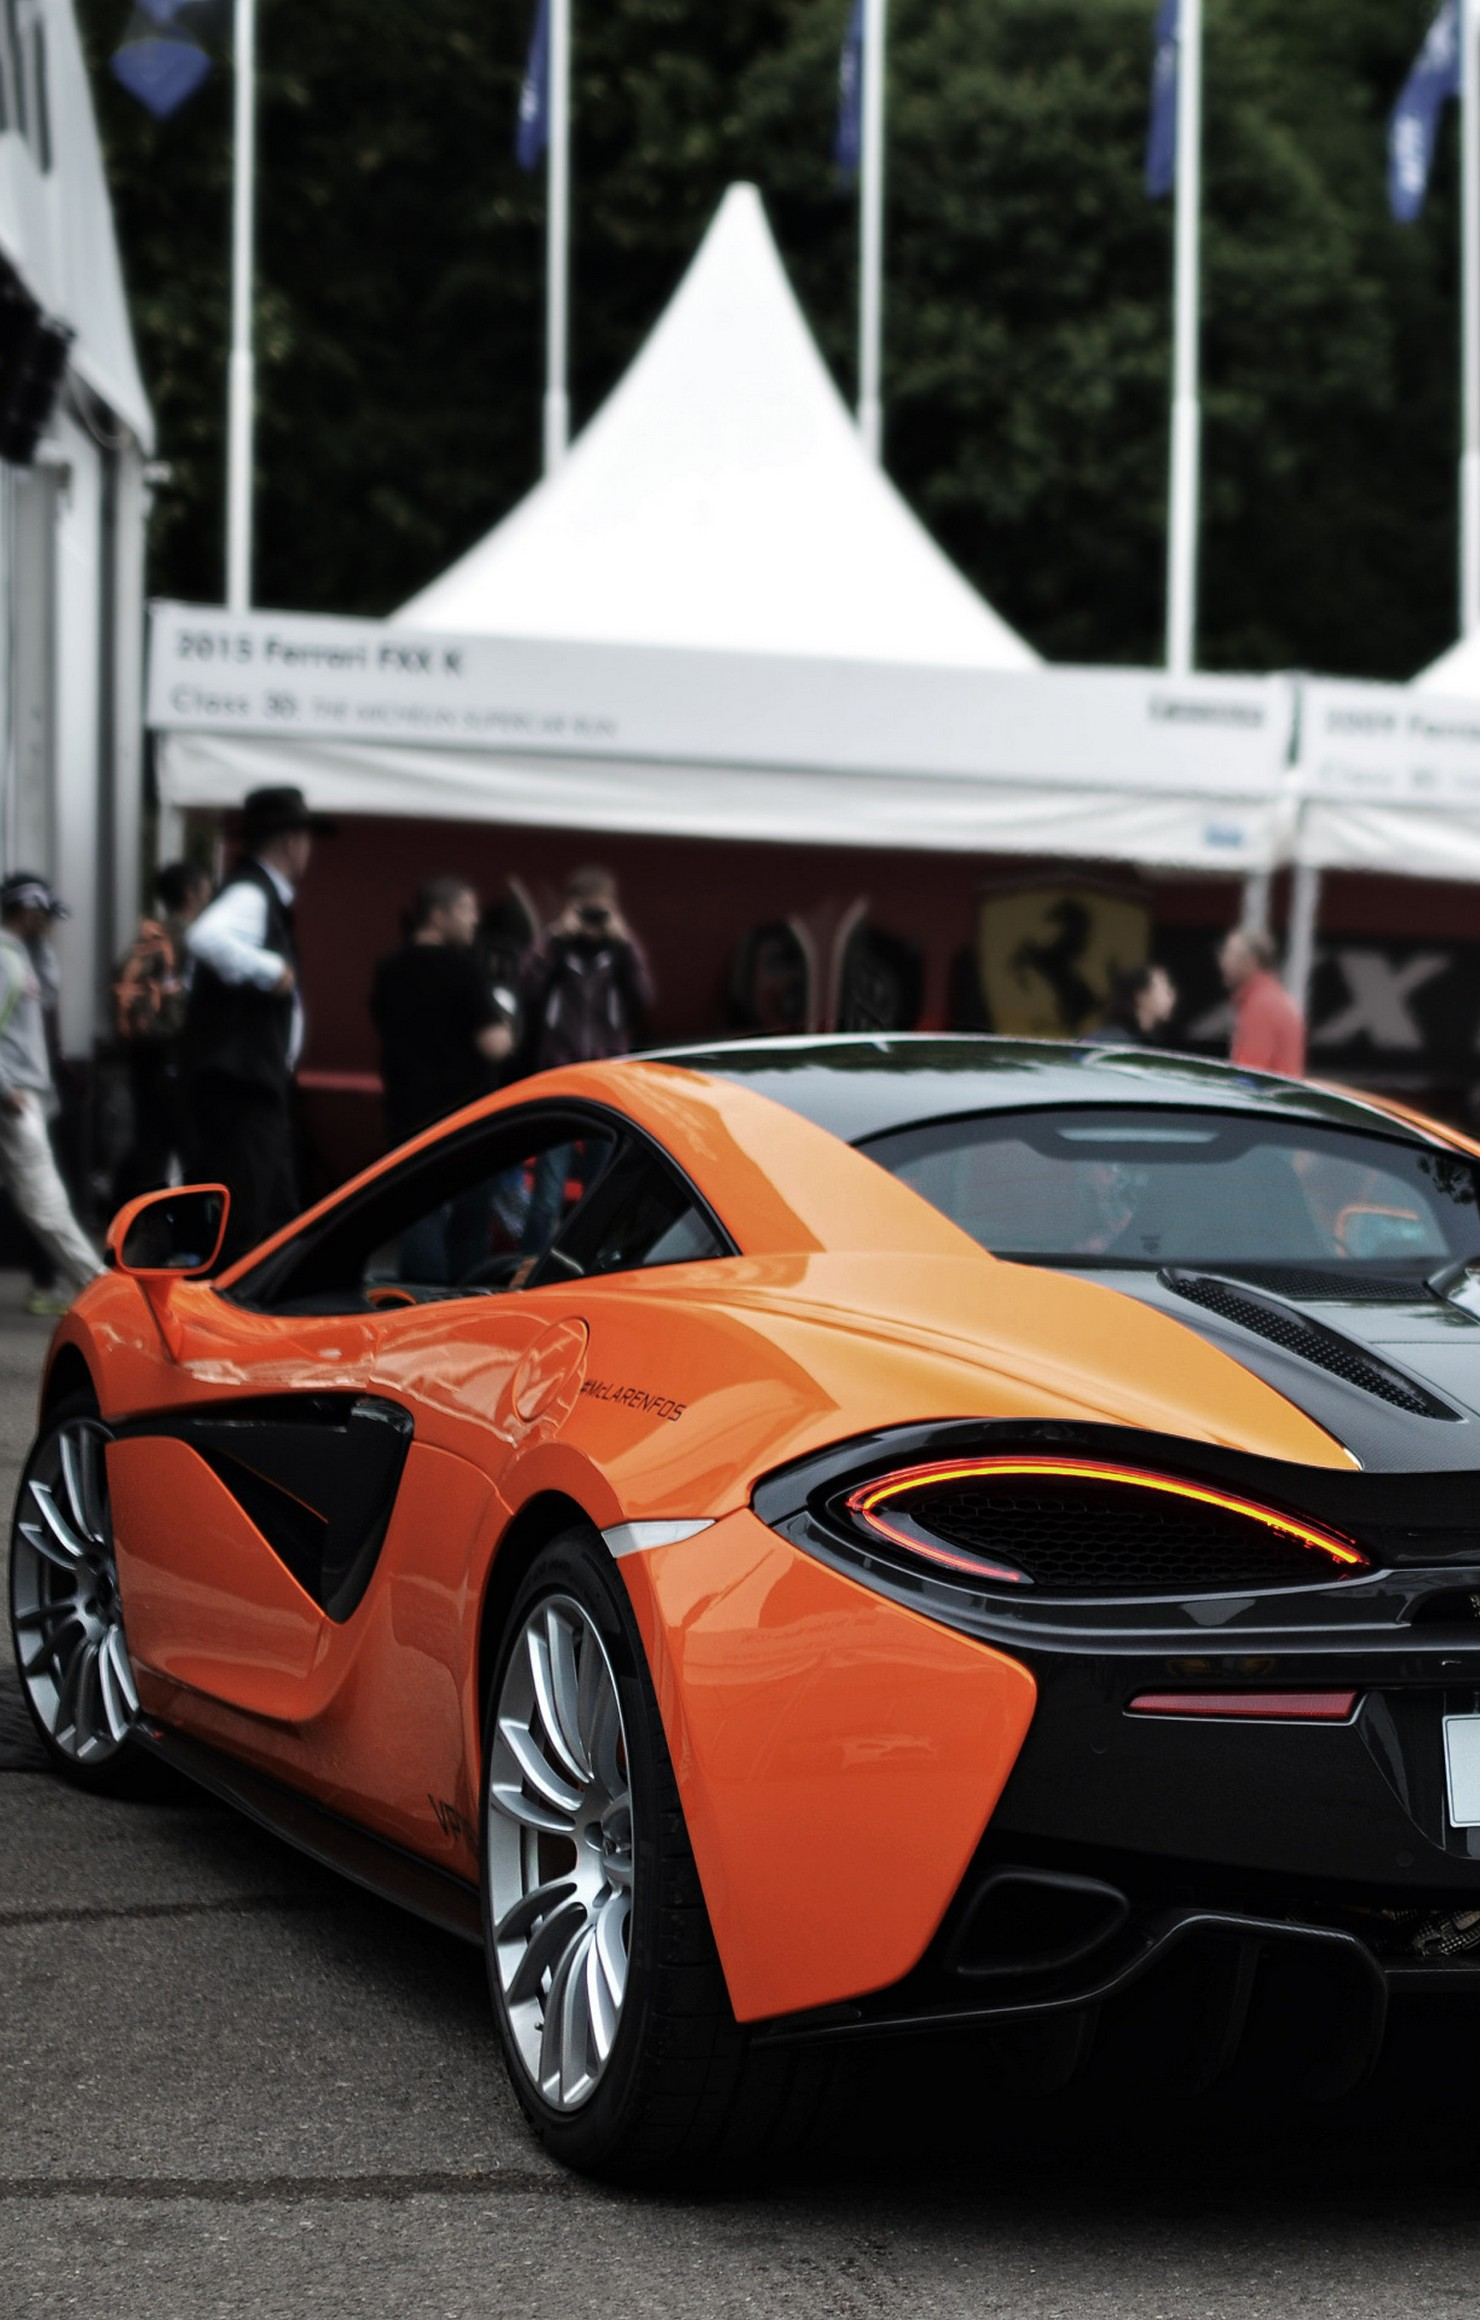 mclaren 570s orange back sportcar retina